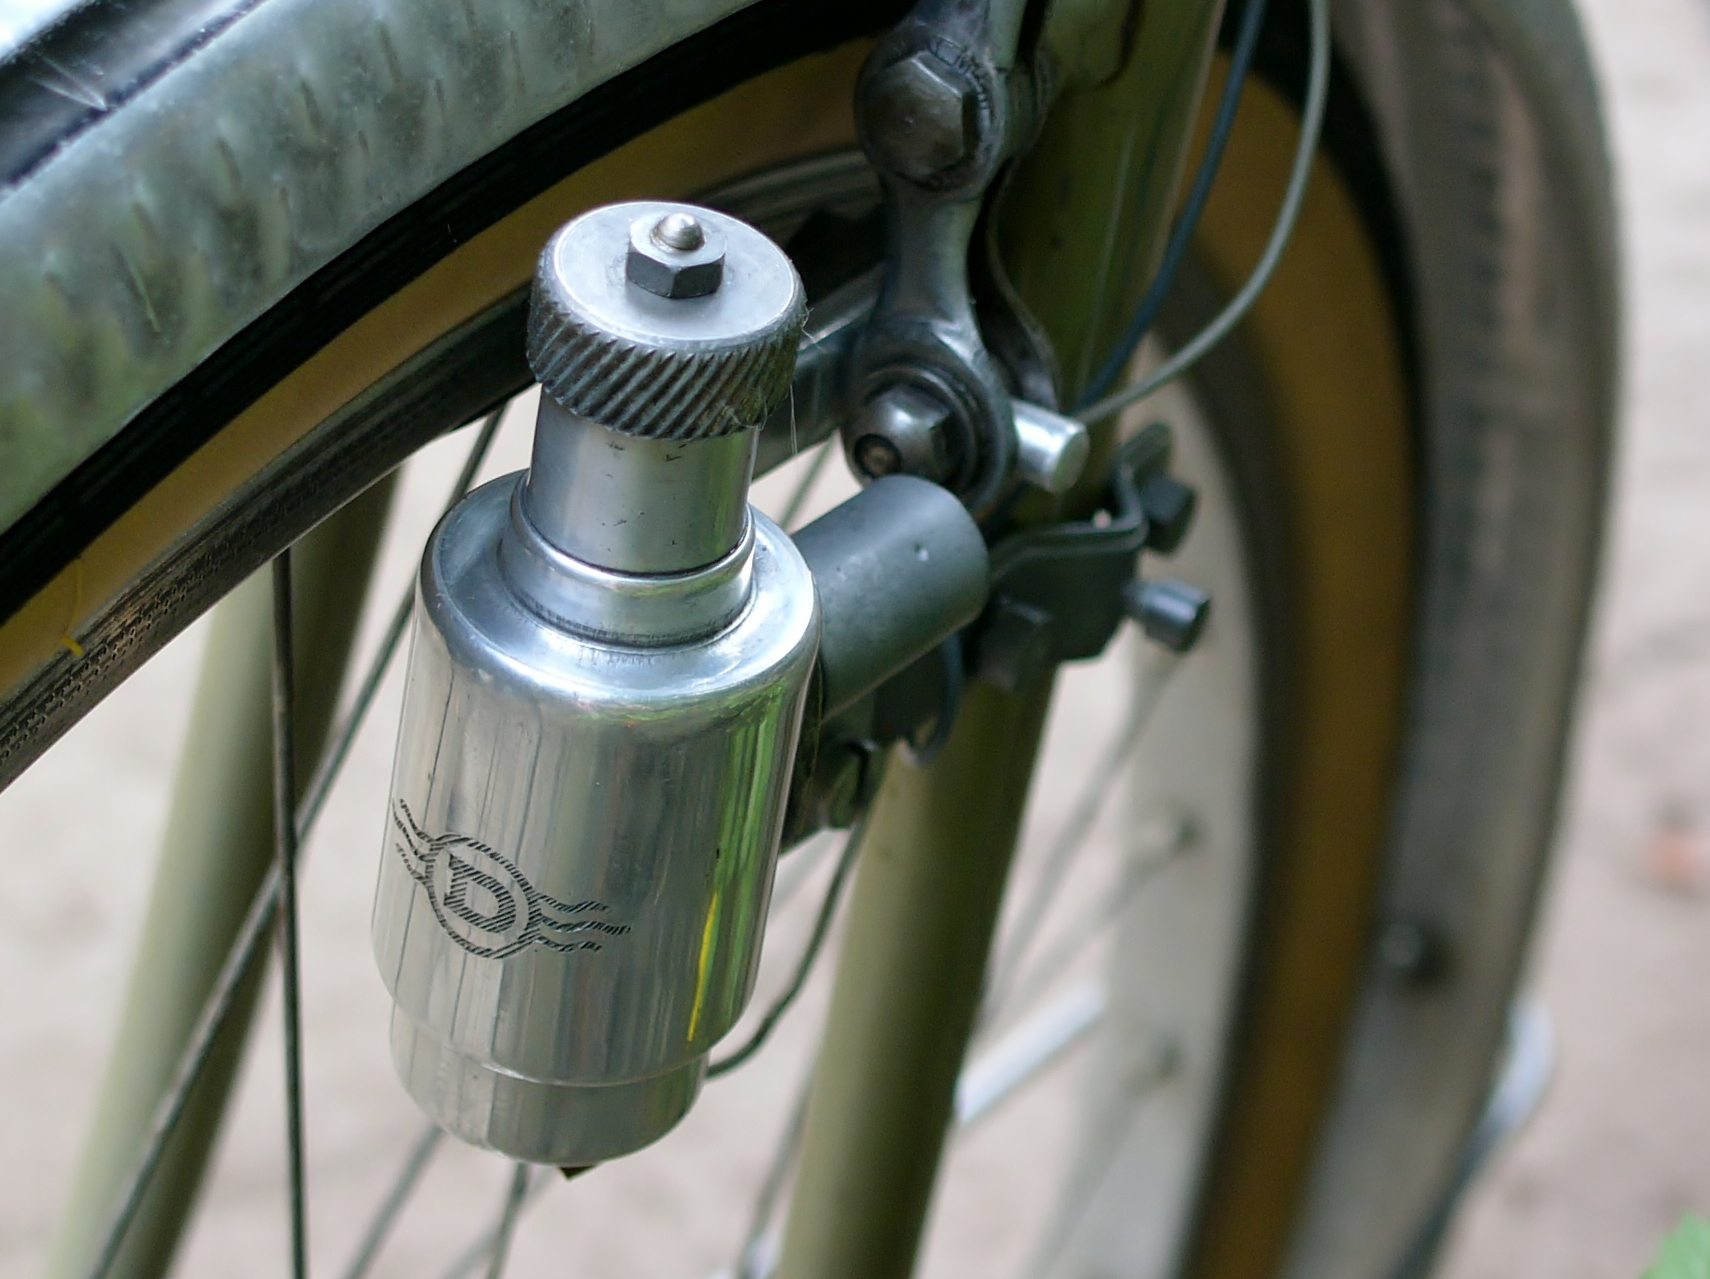 Soubitez Restoring Vintage Bicycles From The Hand Built Era